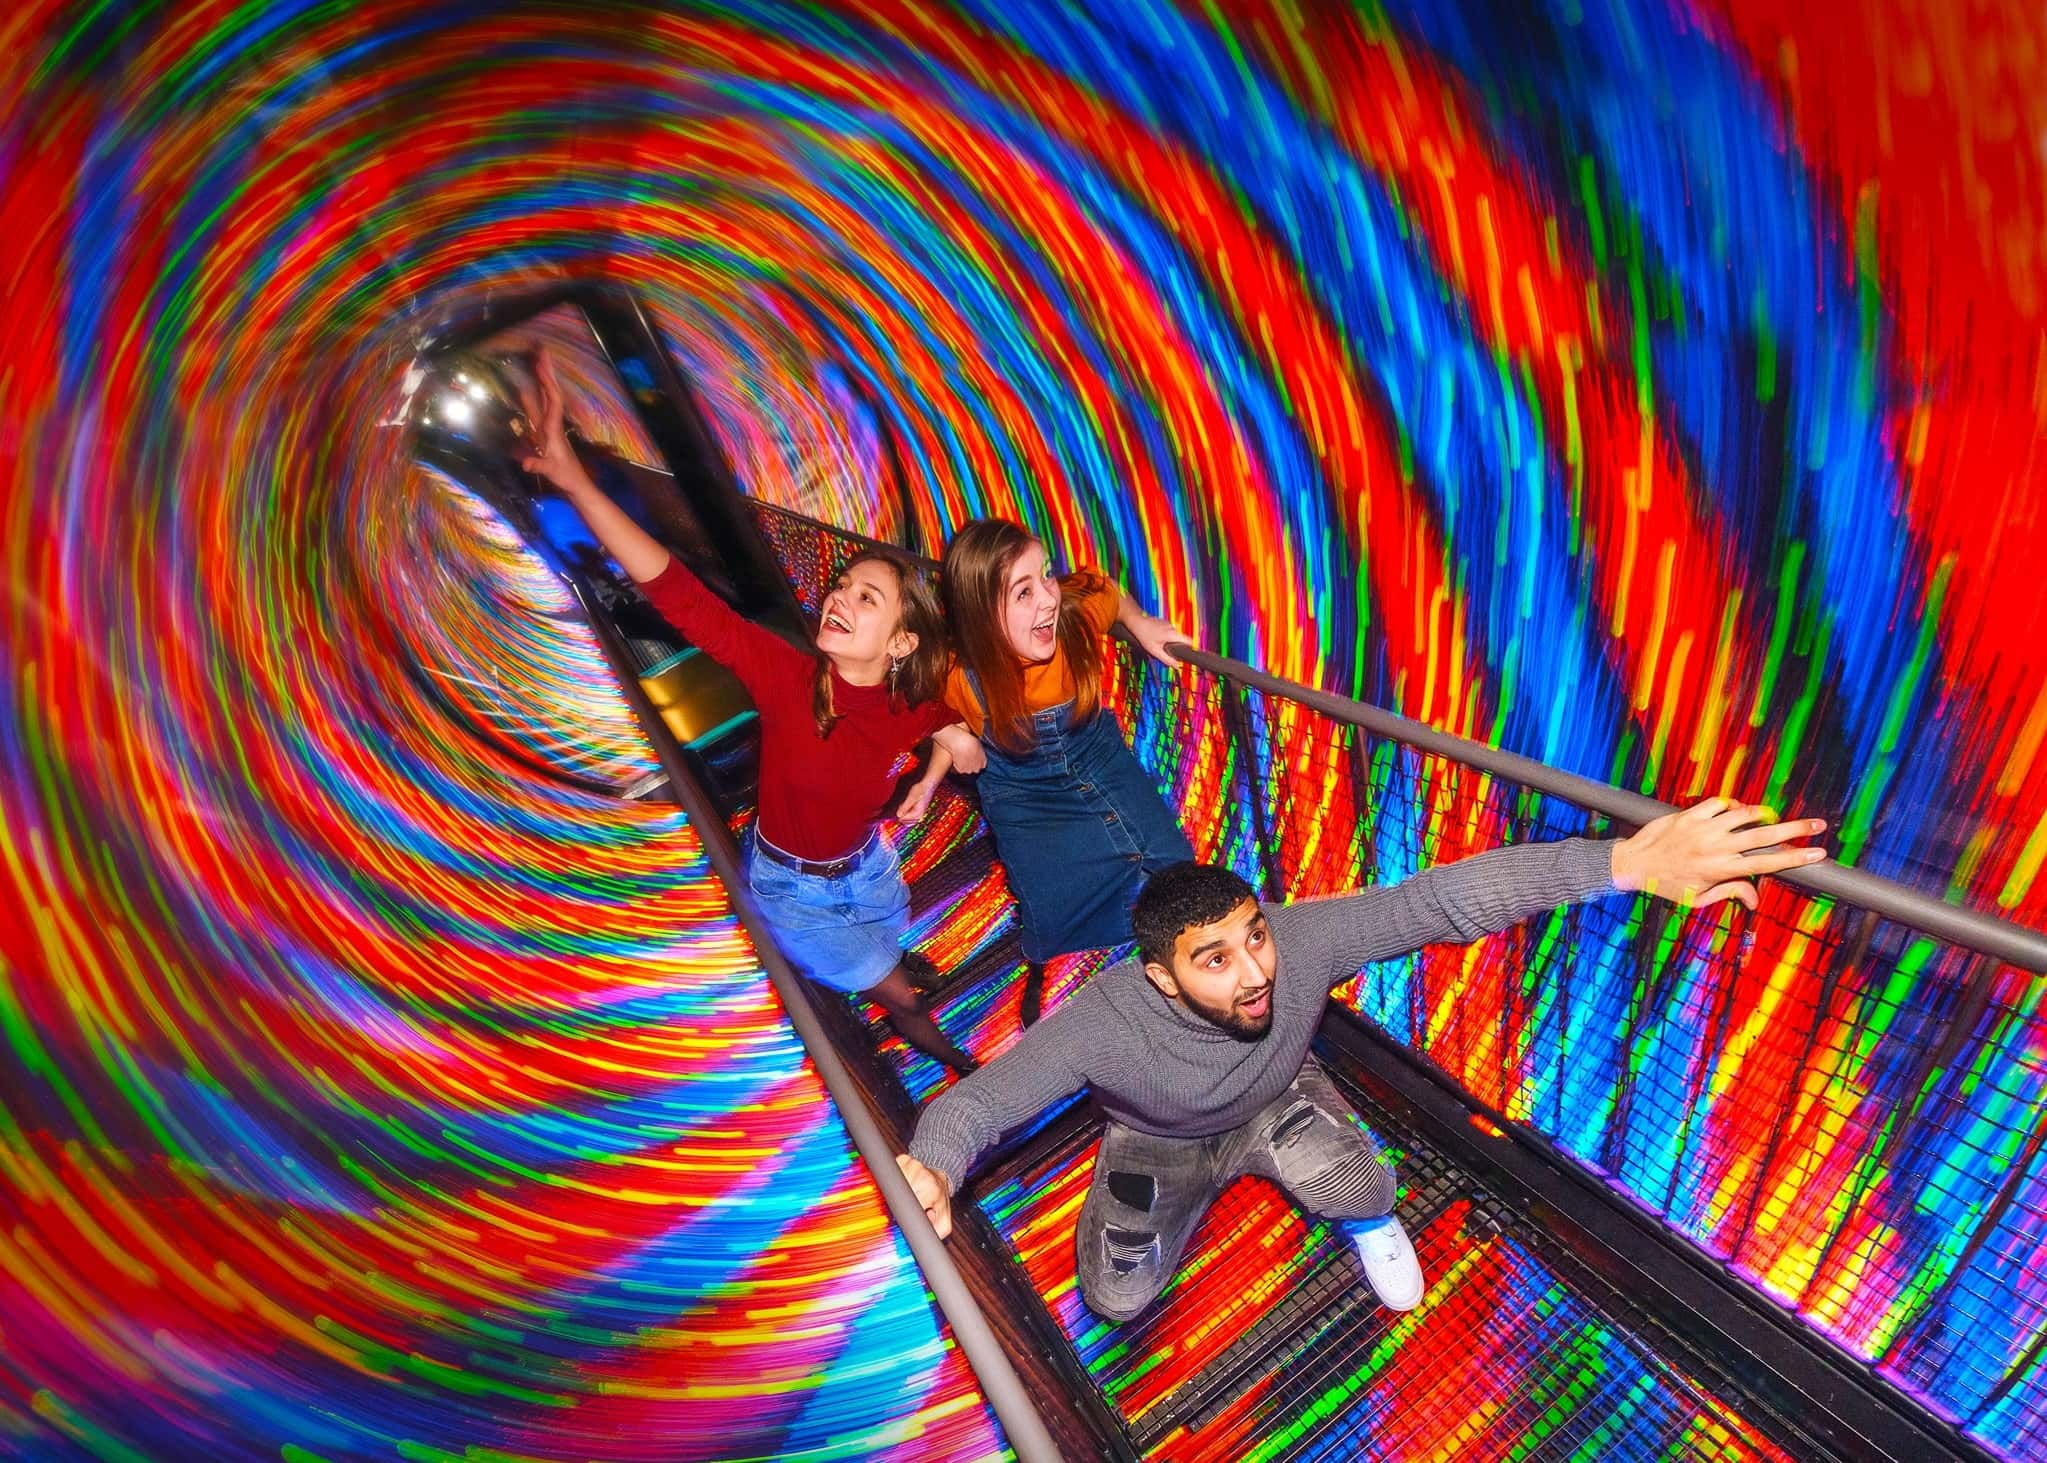 Camera Obscura and World of Illusions